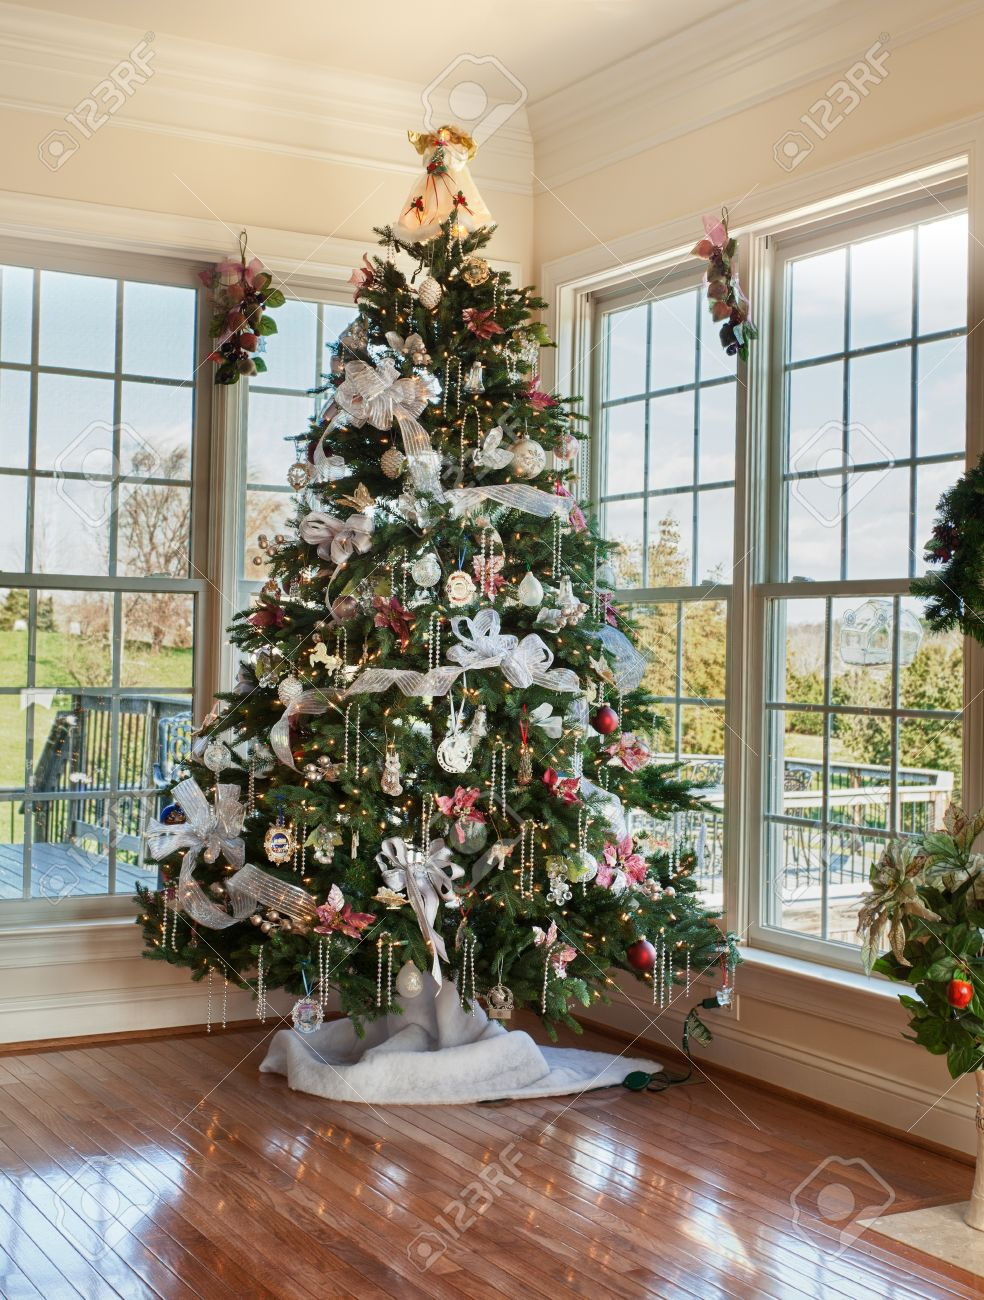 Christmas tree decorated with silver and white ribbons and ornaments in family home Stock Photo - 11526714